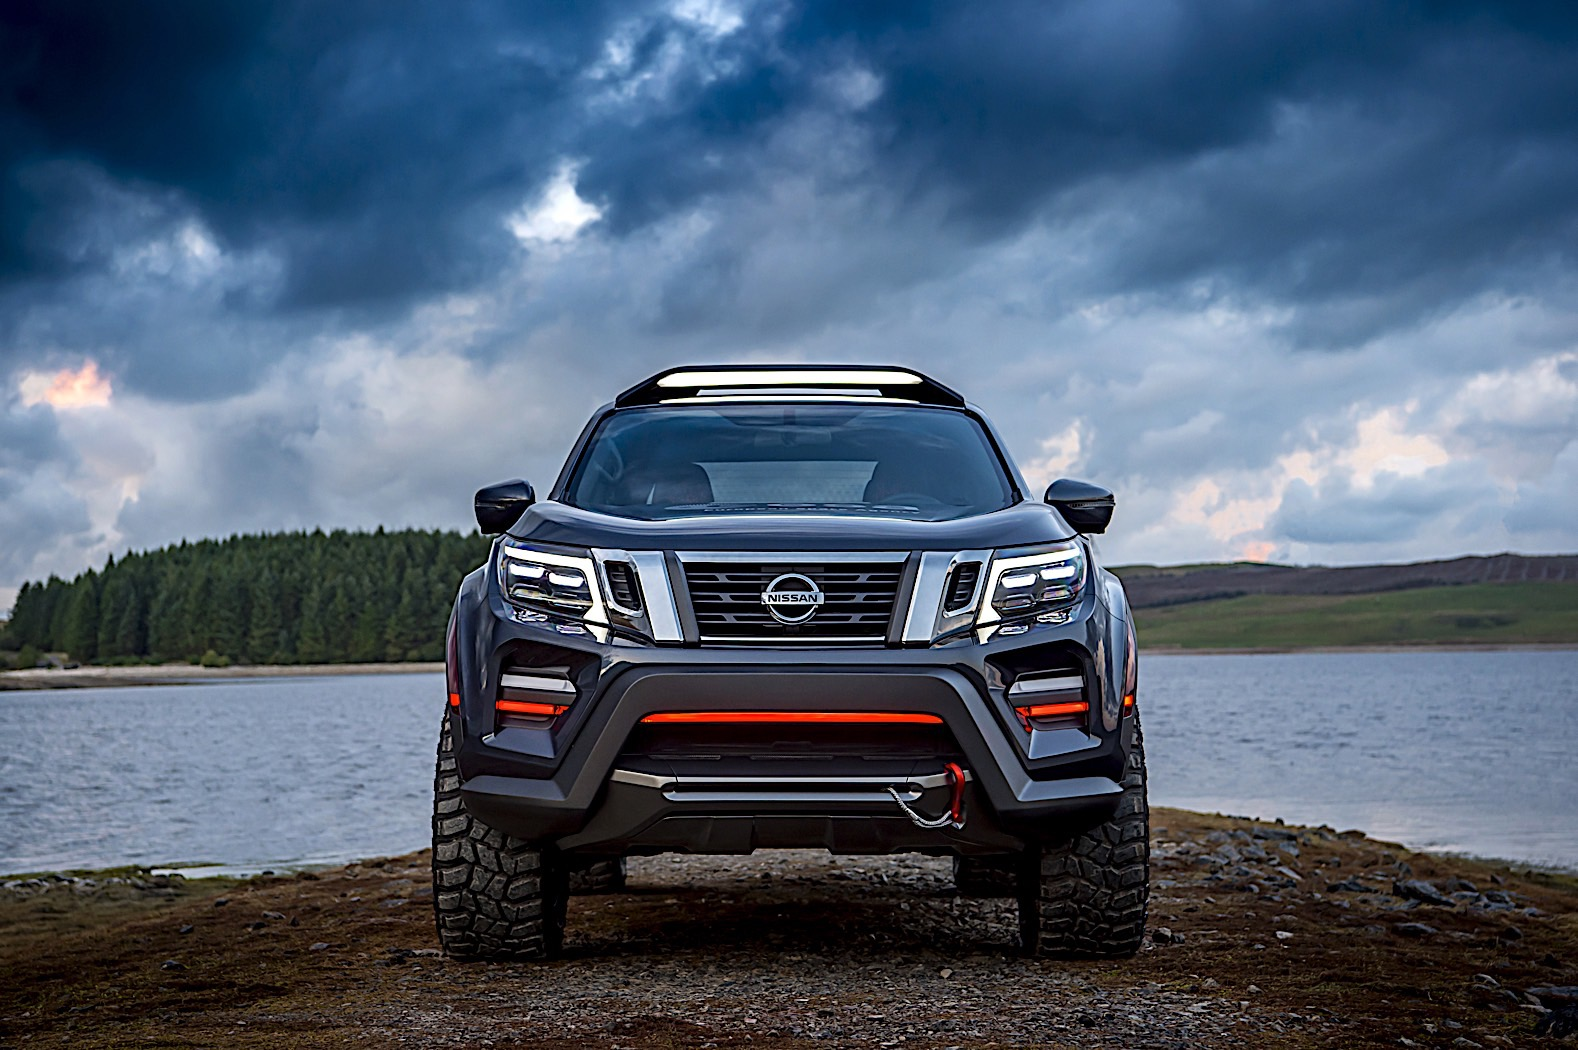 Nissan's rugged truck/trailer concept tows high-powered telescope in search of dark skies